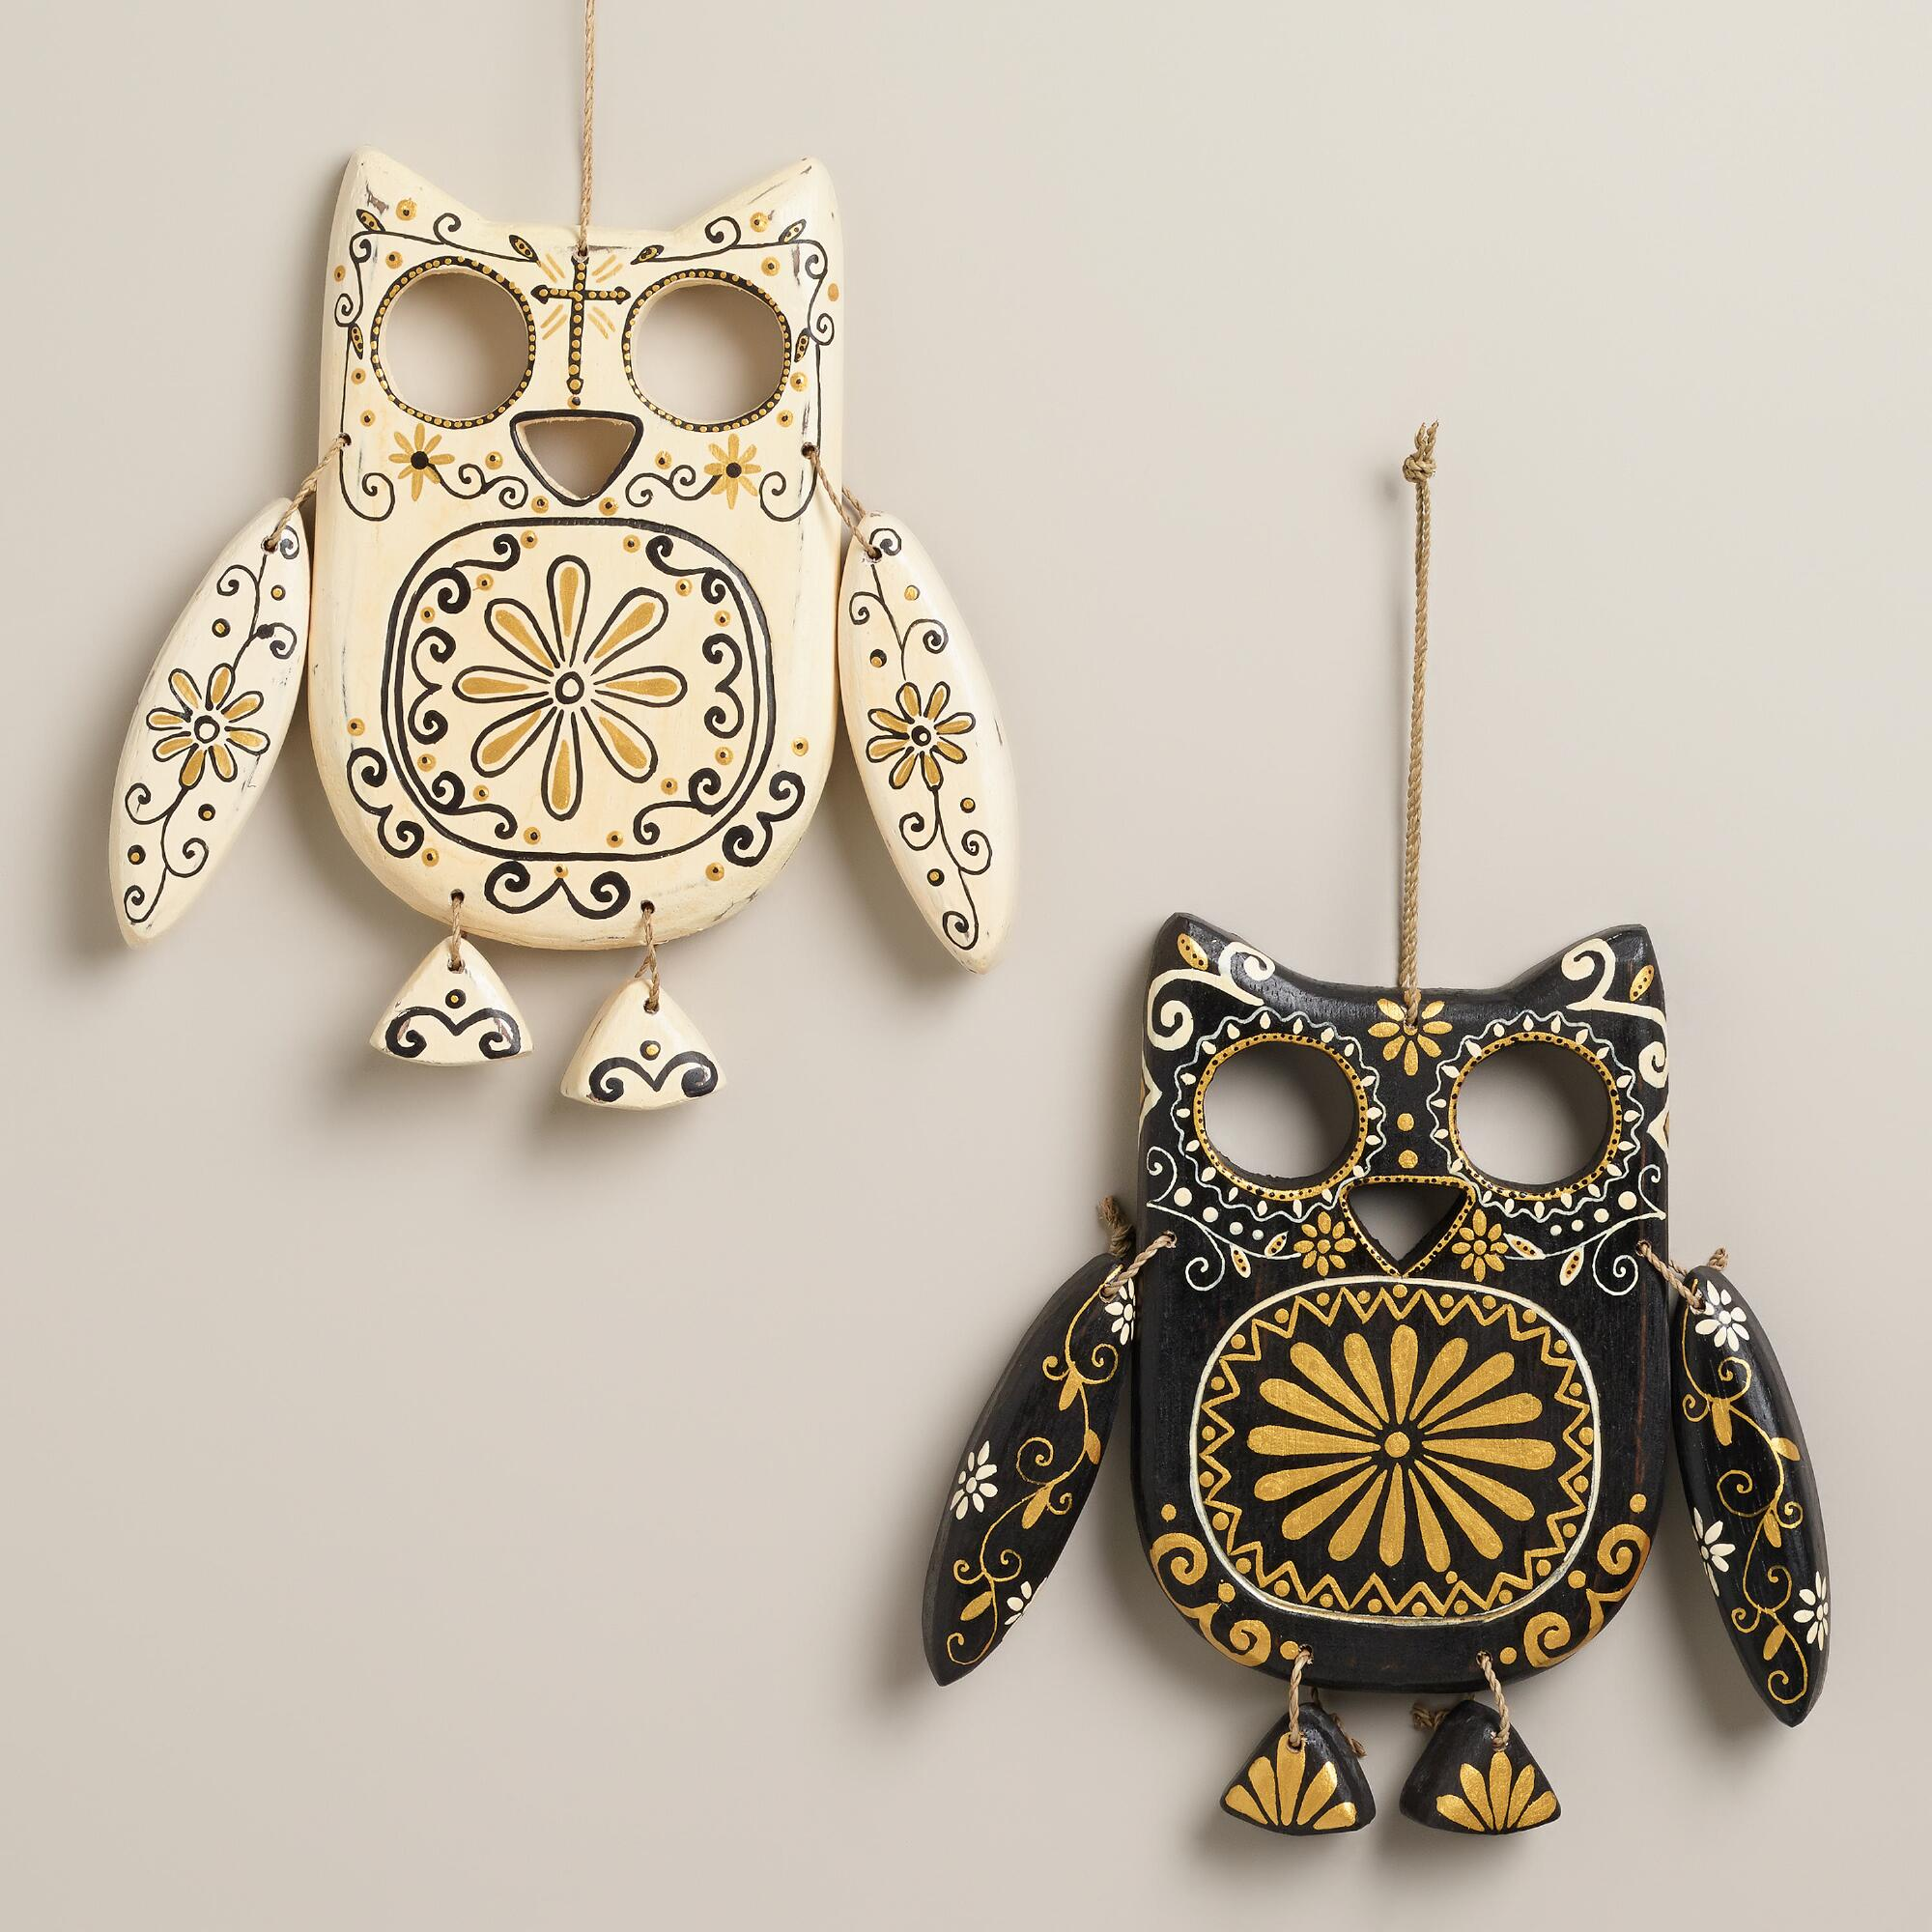 Black and ivory wooden owl wall decor set of 2 world market for World market wall decor